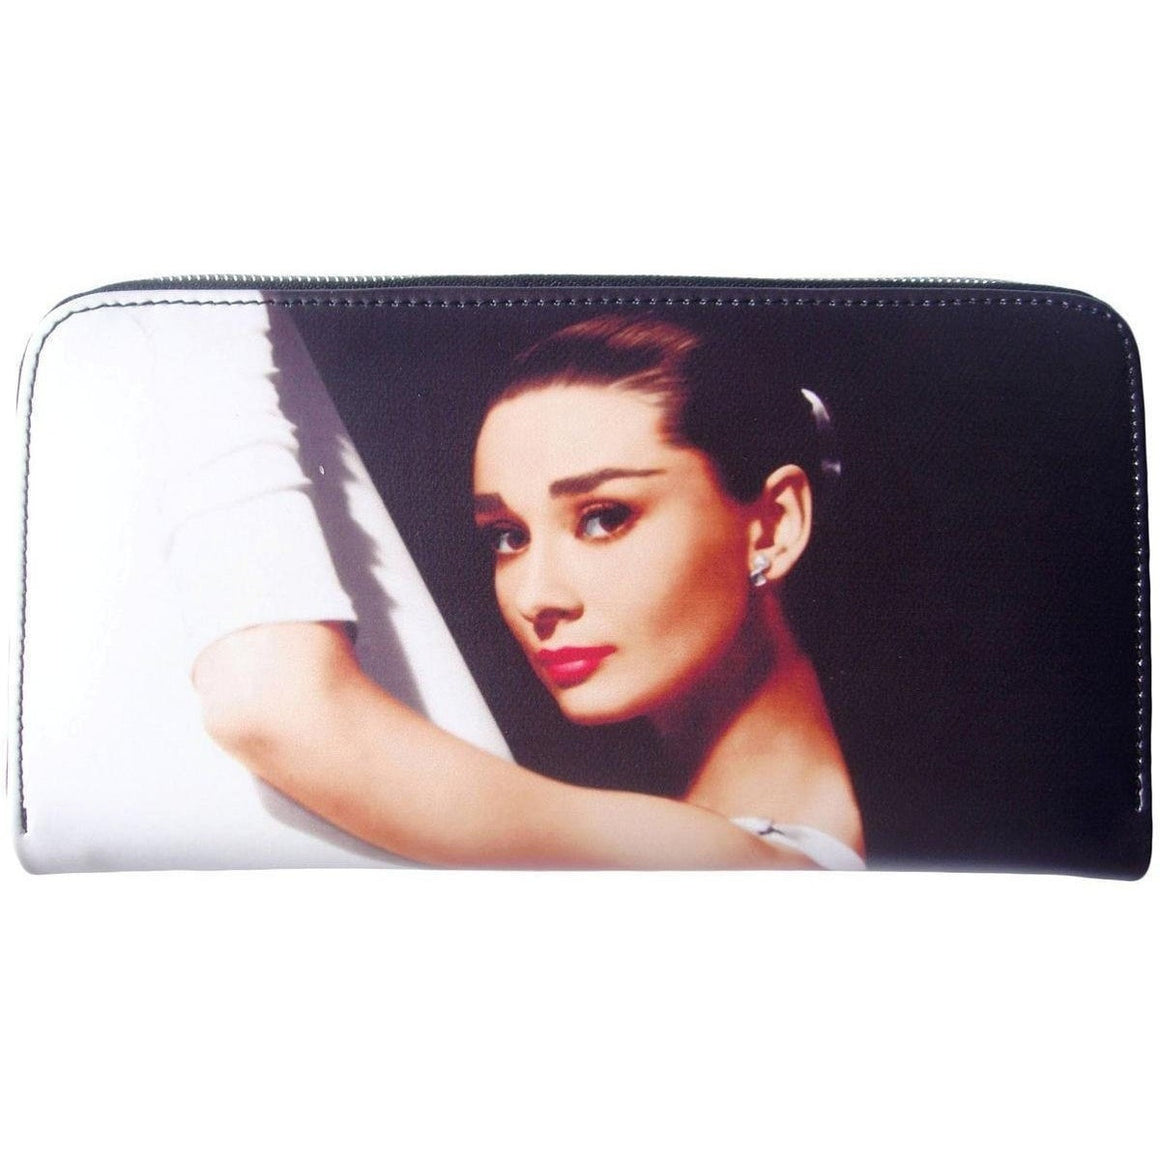 Audrey Hepburn Breakfast at Tiffanys Retro Travel Wallet Purse - SilverMania925